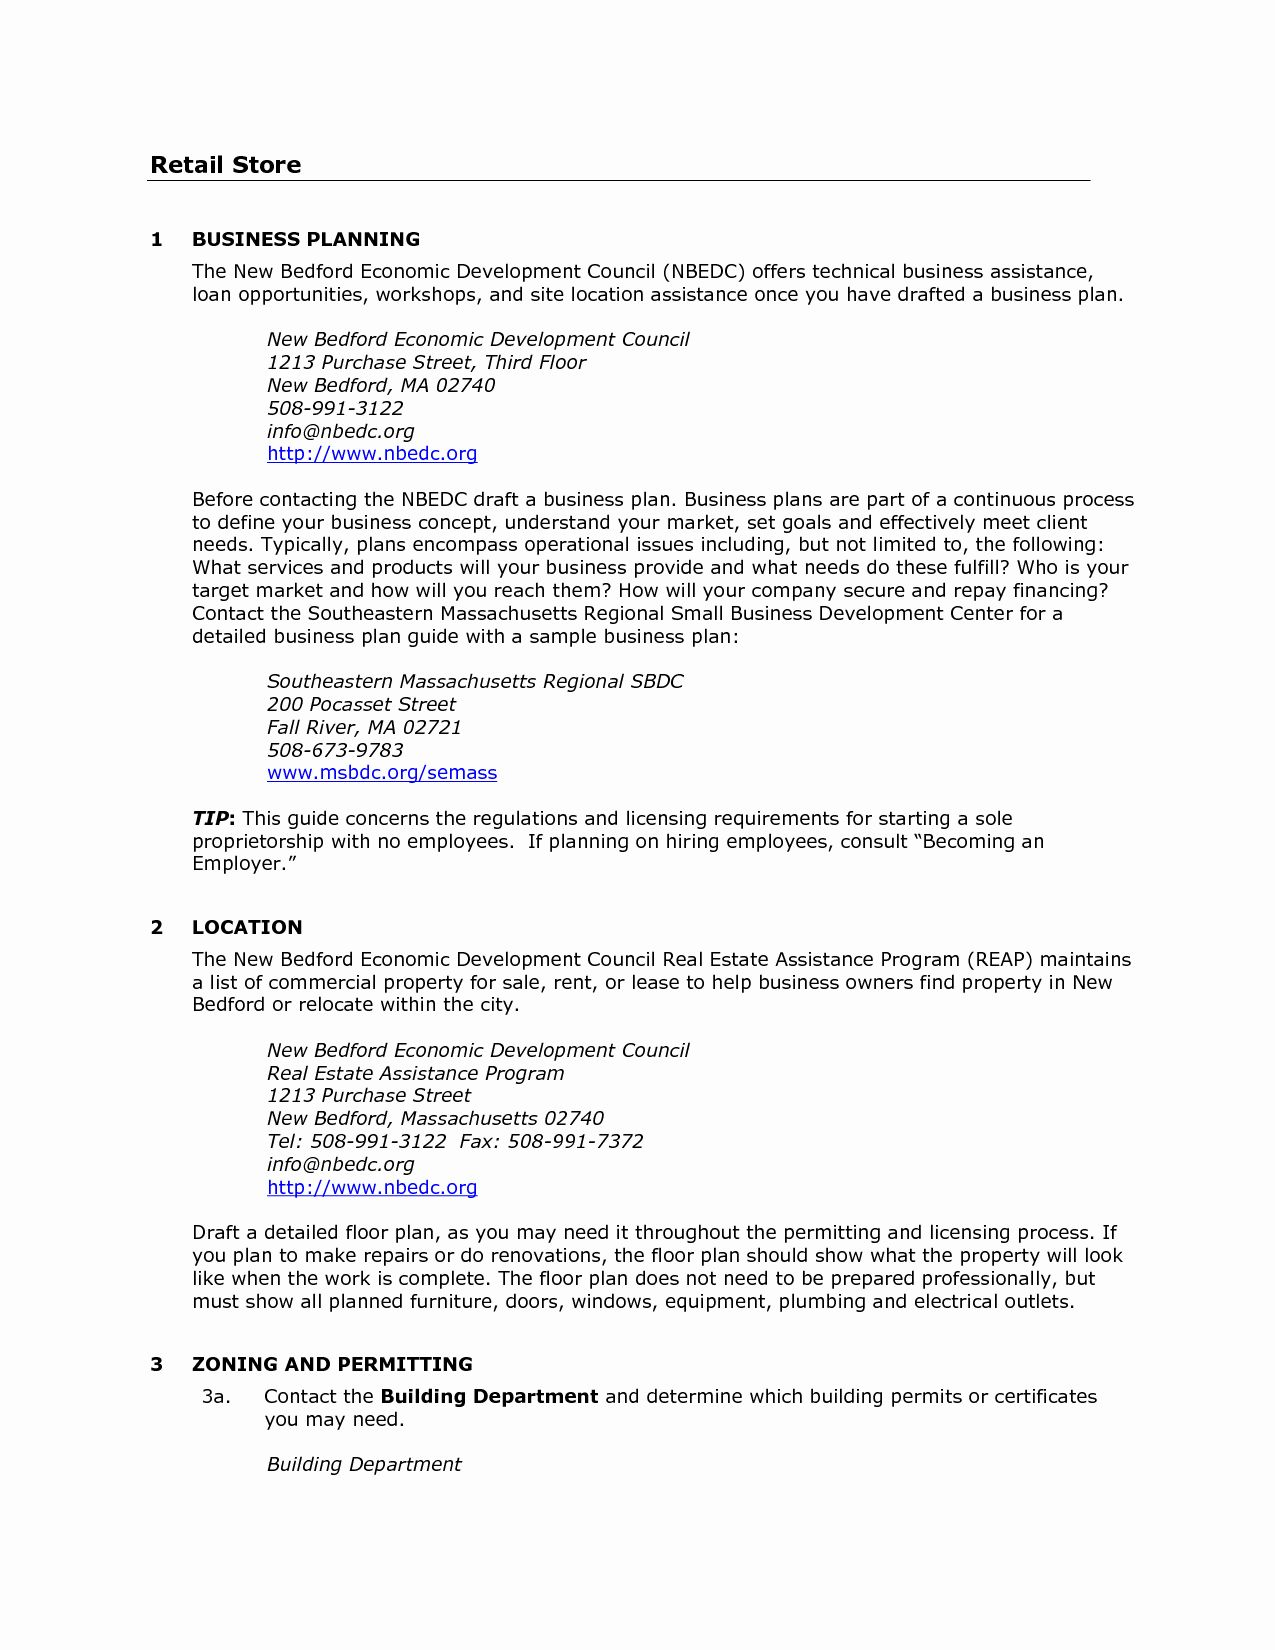 Retail Business Plan Template New How To Start A Clothing Retail Store Business Retail Business Plan Template Business Plan Template Free Retail Business Plan